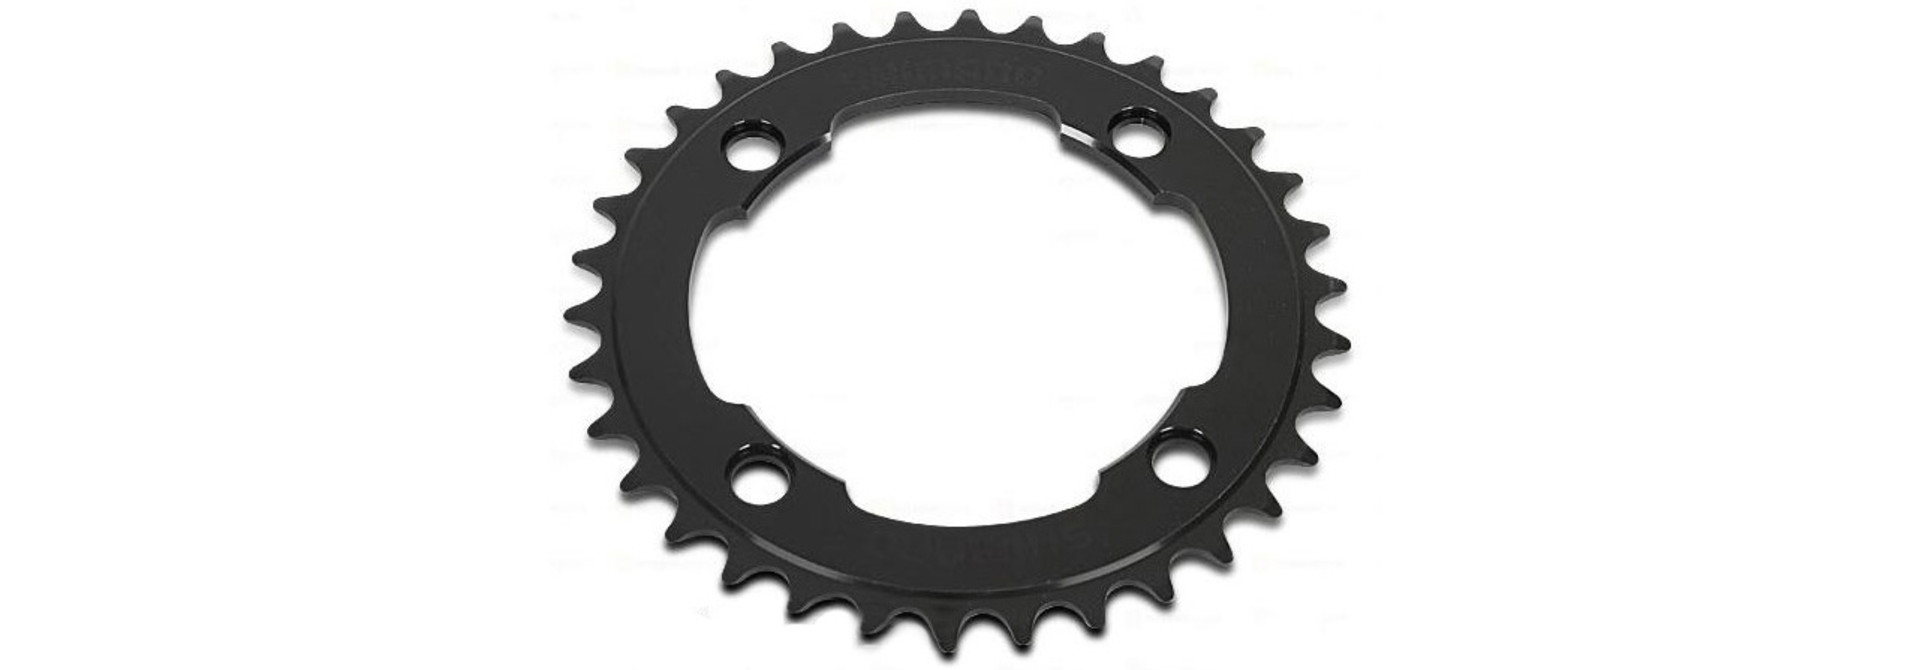 CHAINRING FOR FRONT CHAINWHEEL SM-CR80-A 44T FOR F